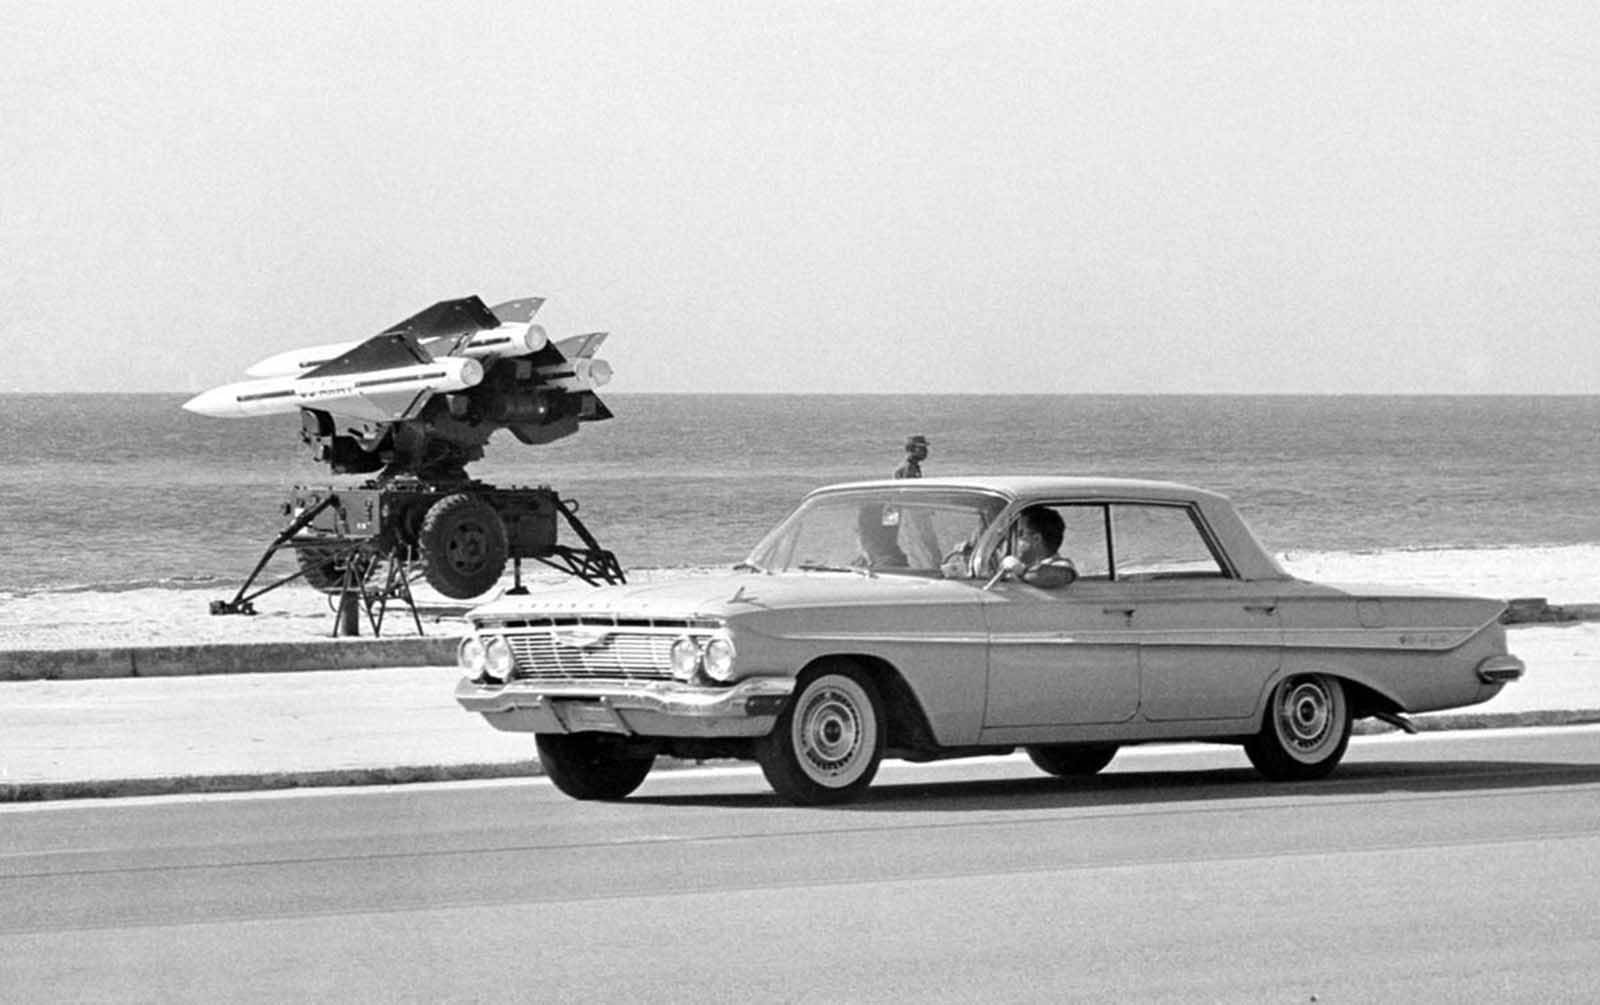 U.S. Army anti-aircraft rockets, mounted on launchers and pointed out over the Florida Straits in Key West, Florida, on October 27, 1962.